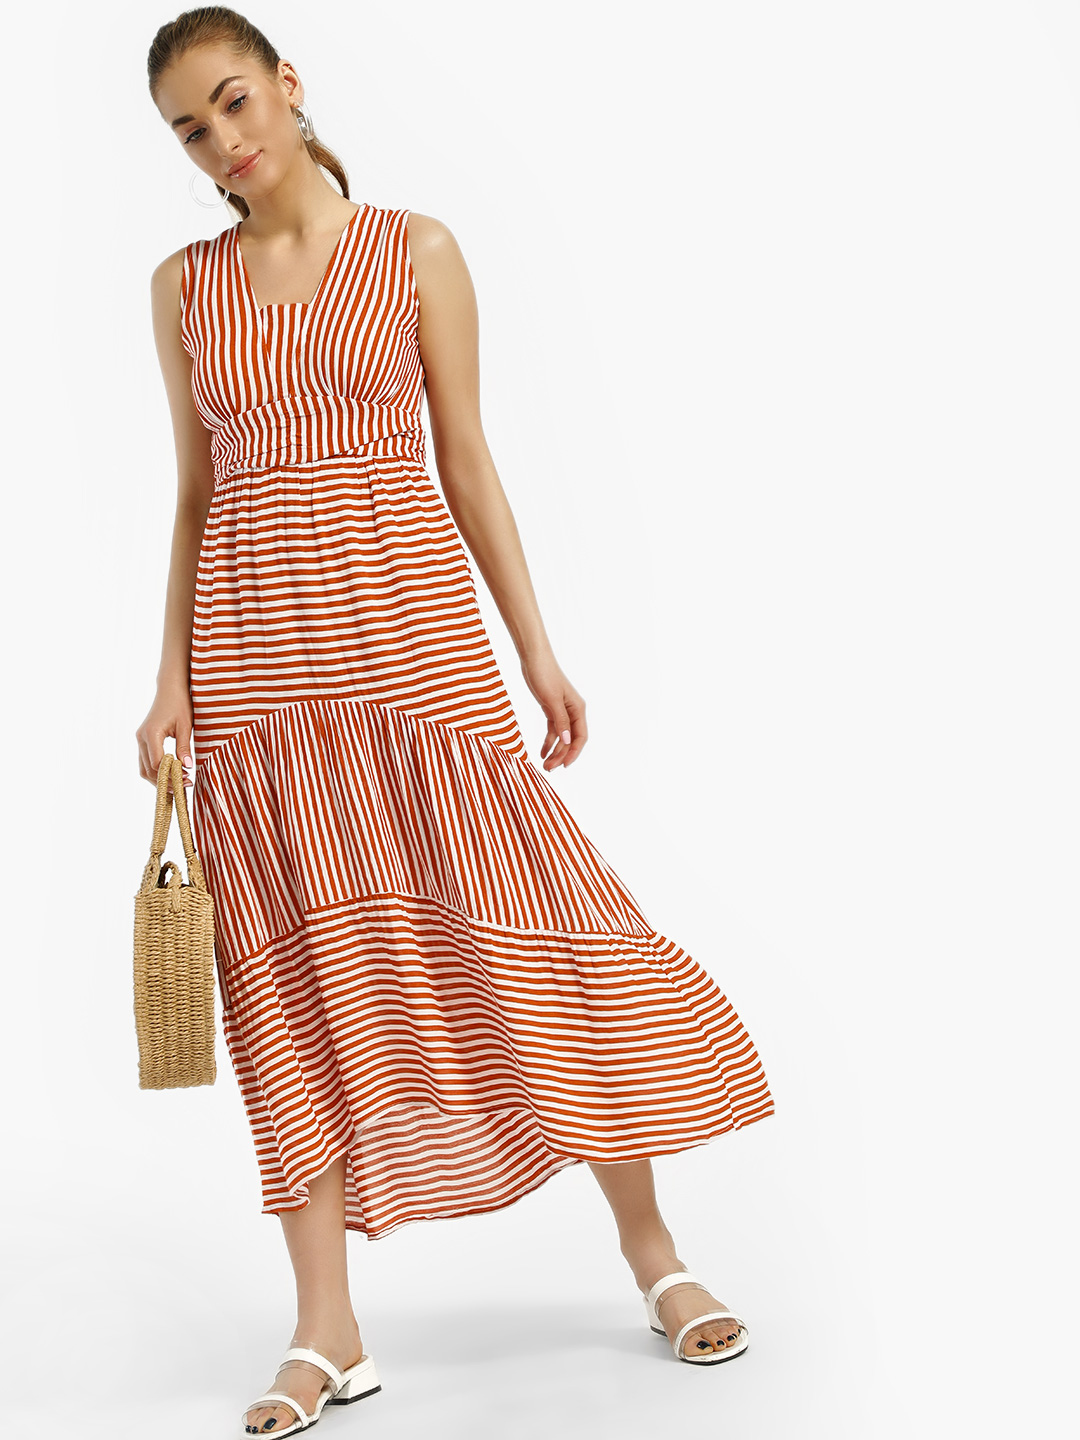 Rena Love Mustard Multi Stripe Tie Knot Midi Dress 1